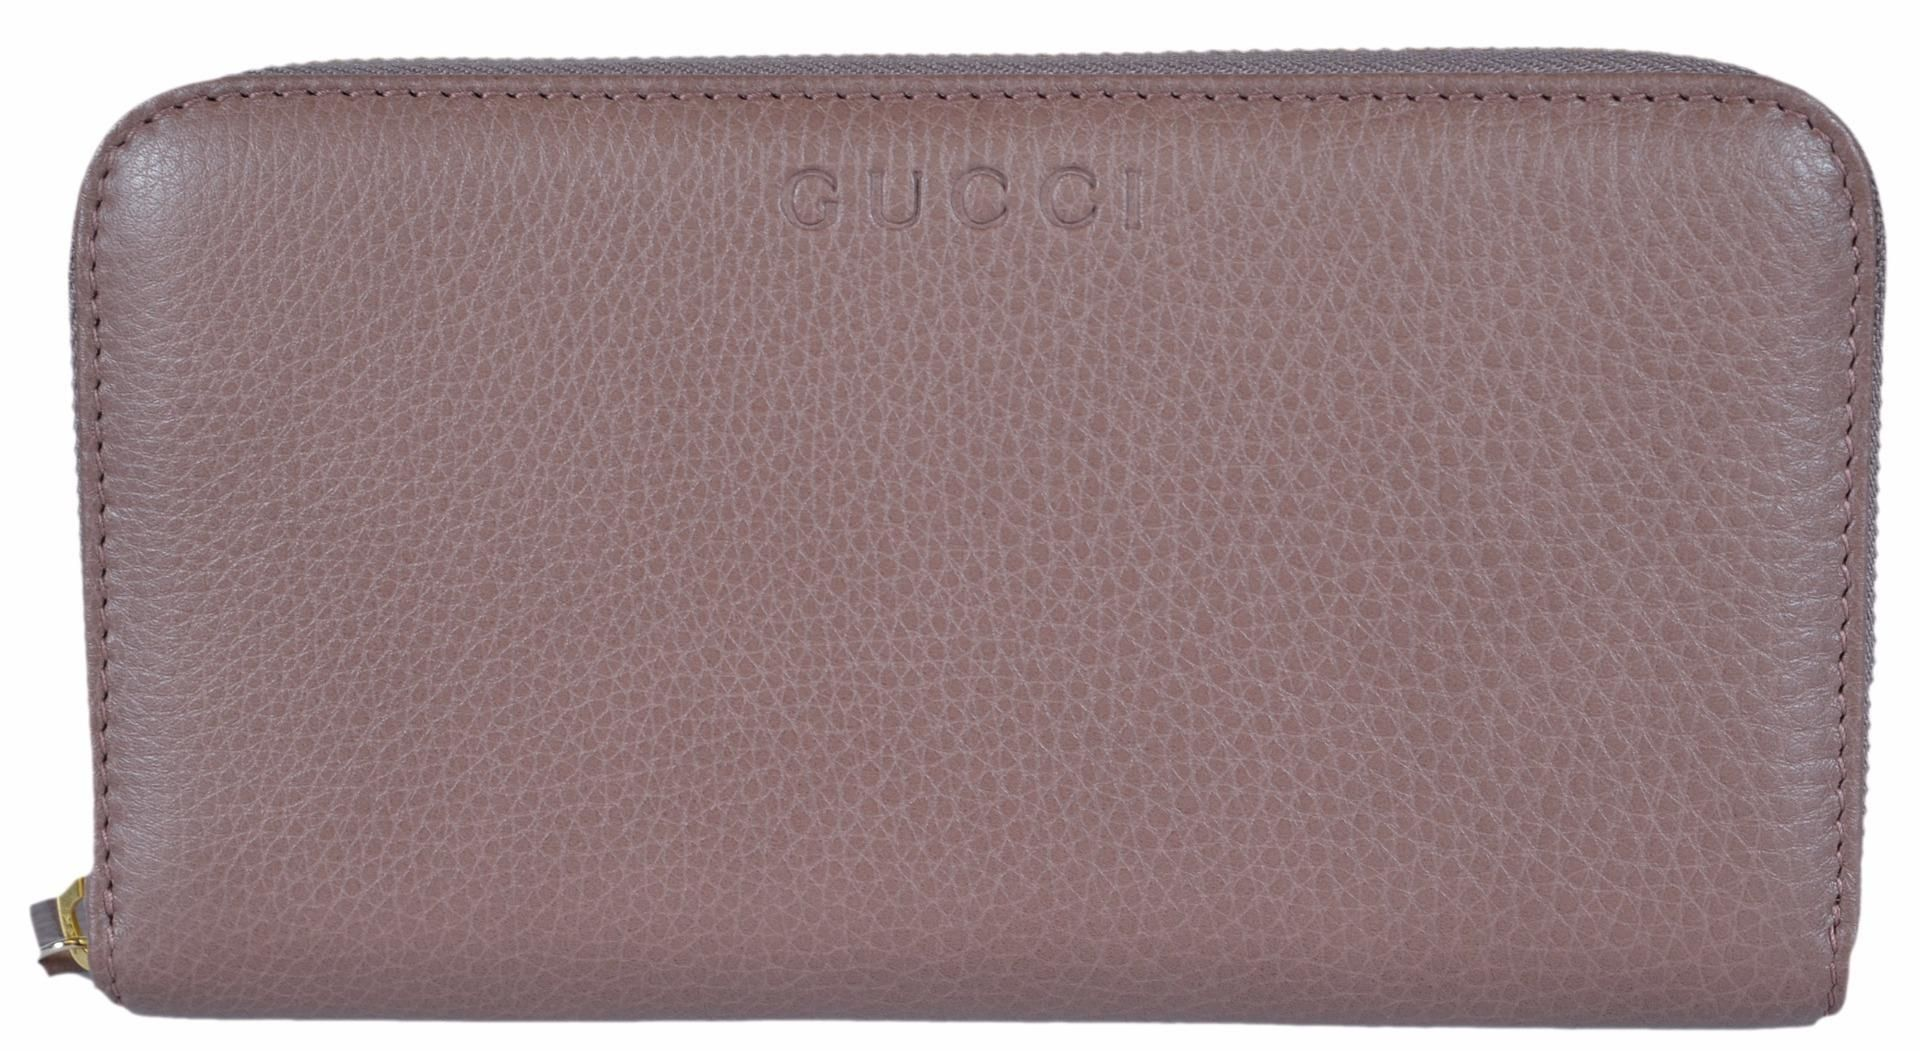 81371ee3b67 New Gucci 363423 Women s Pink Tan Leather Zip Around Wallet Clutch. Free  shipping and guaranteed authenticity on New Gucci 363423 Women s Pink Tan  Leather ...